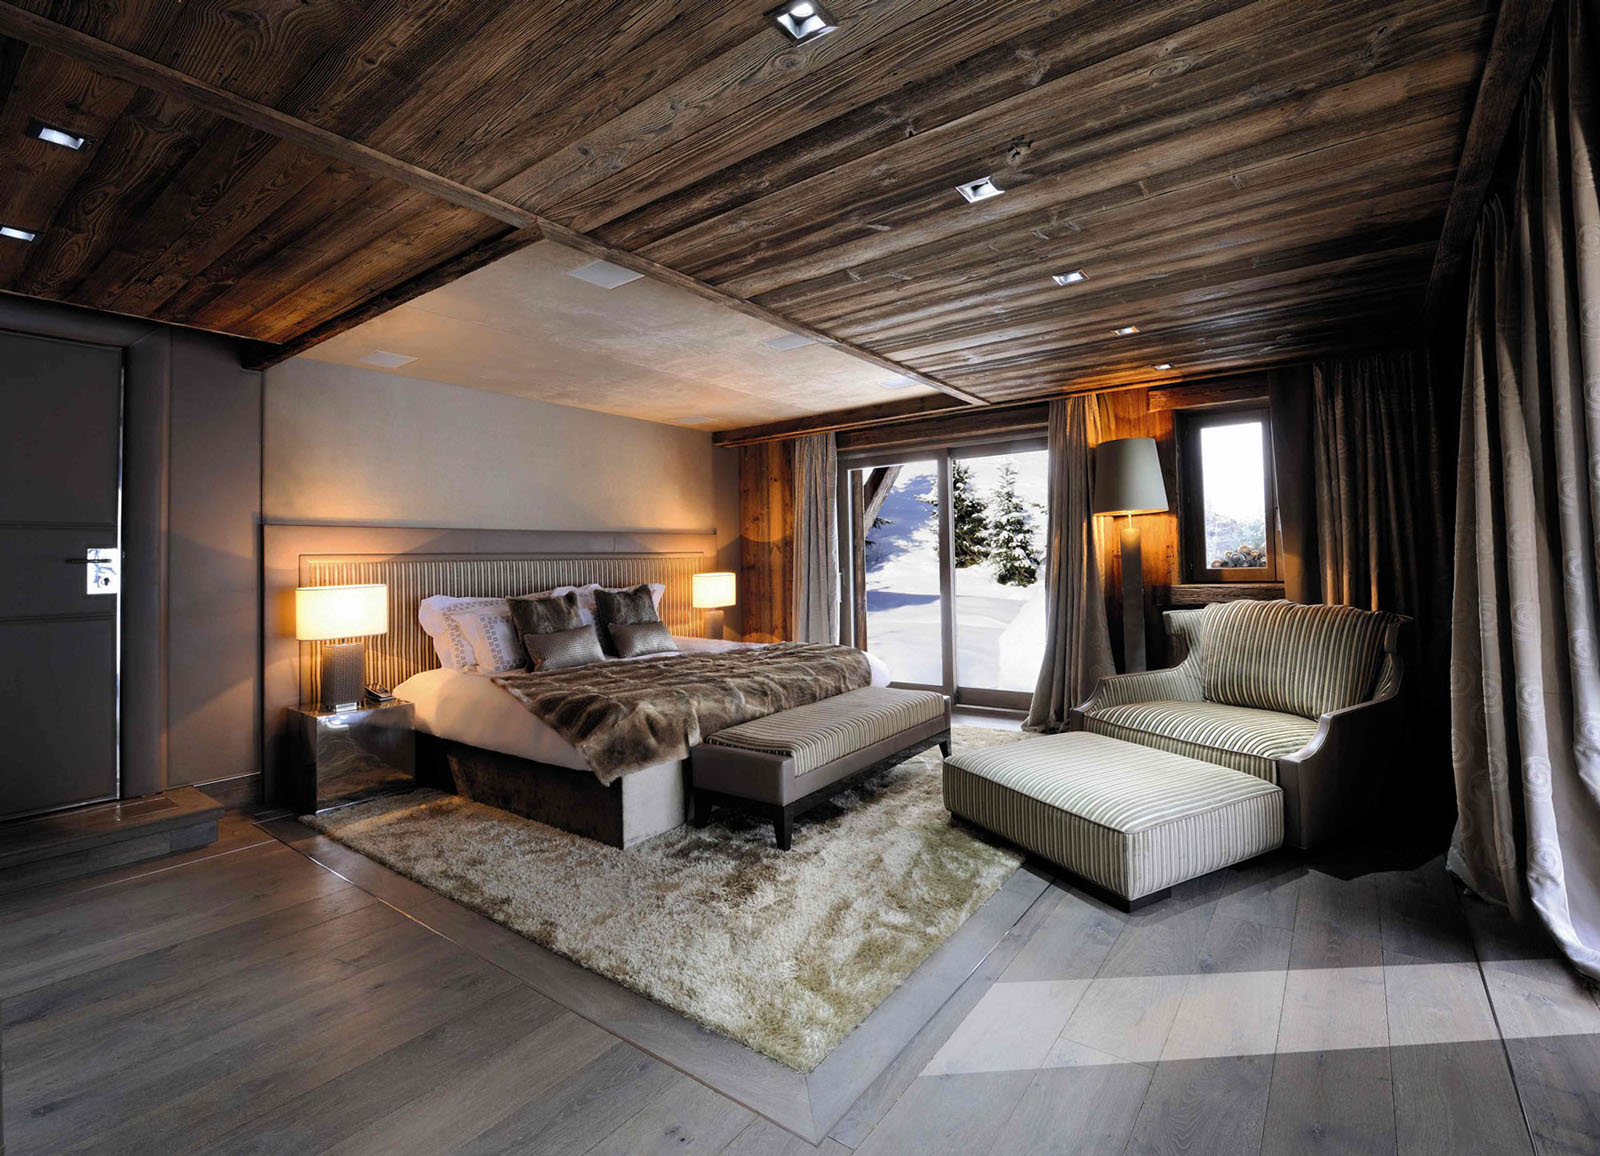 Chic Modern Rustic Chalet In The Rh Ne Alpes Idesignarch